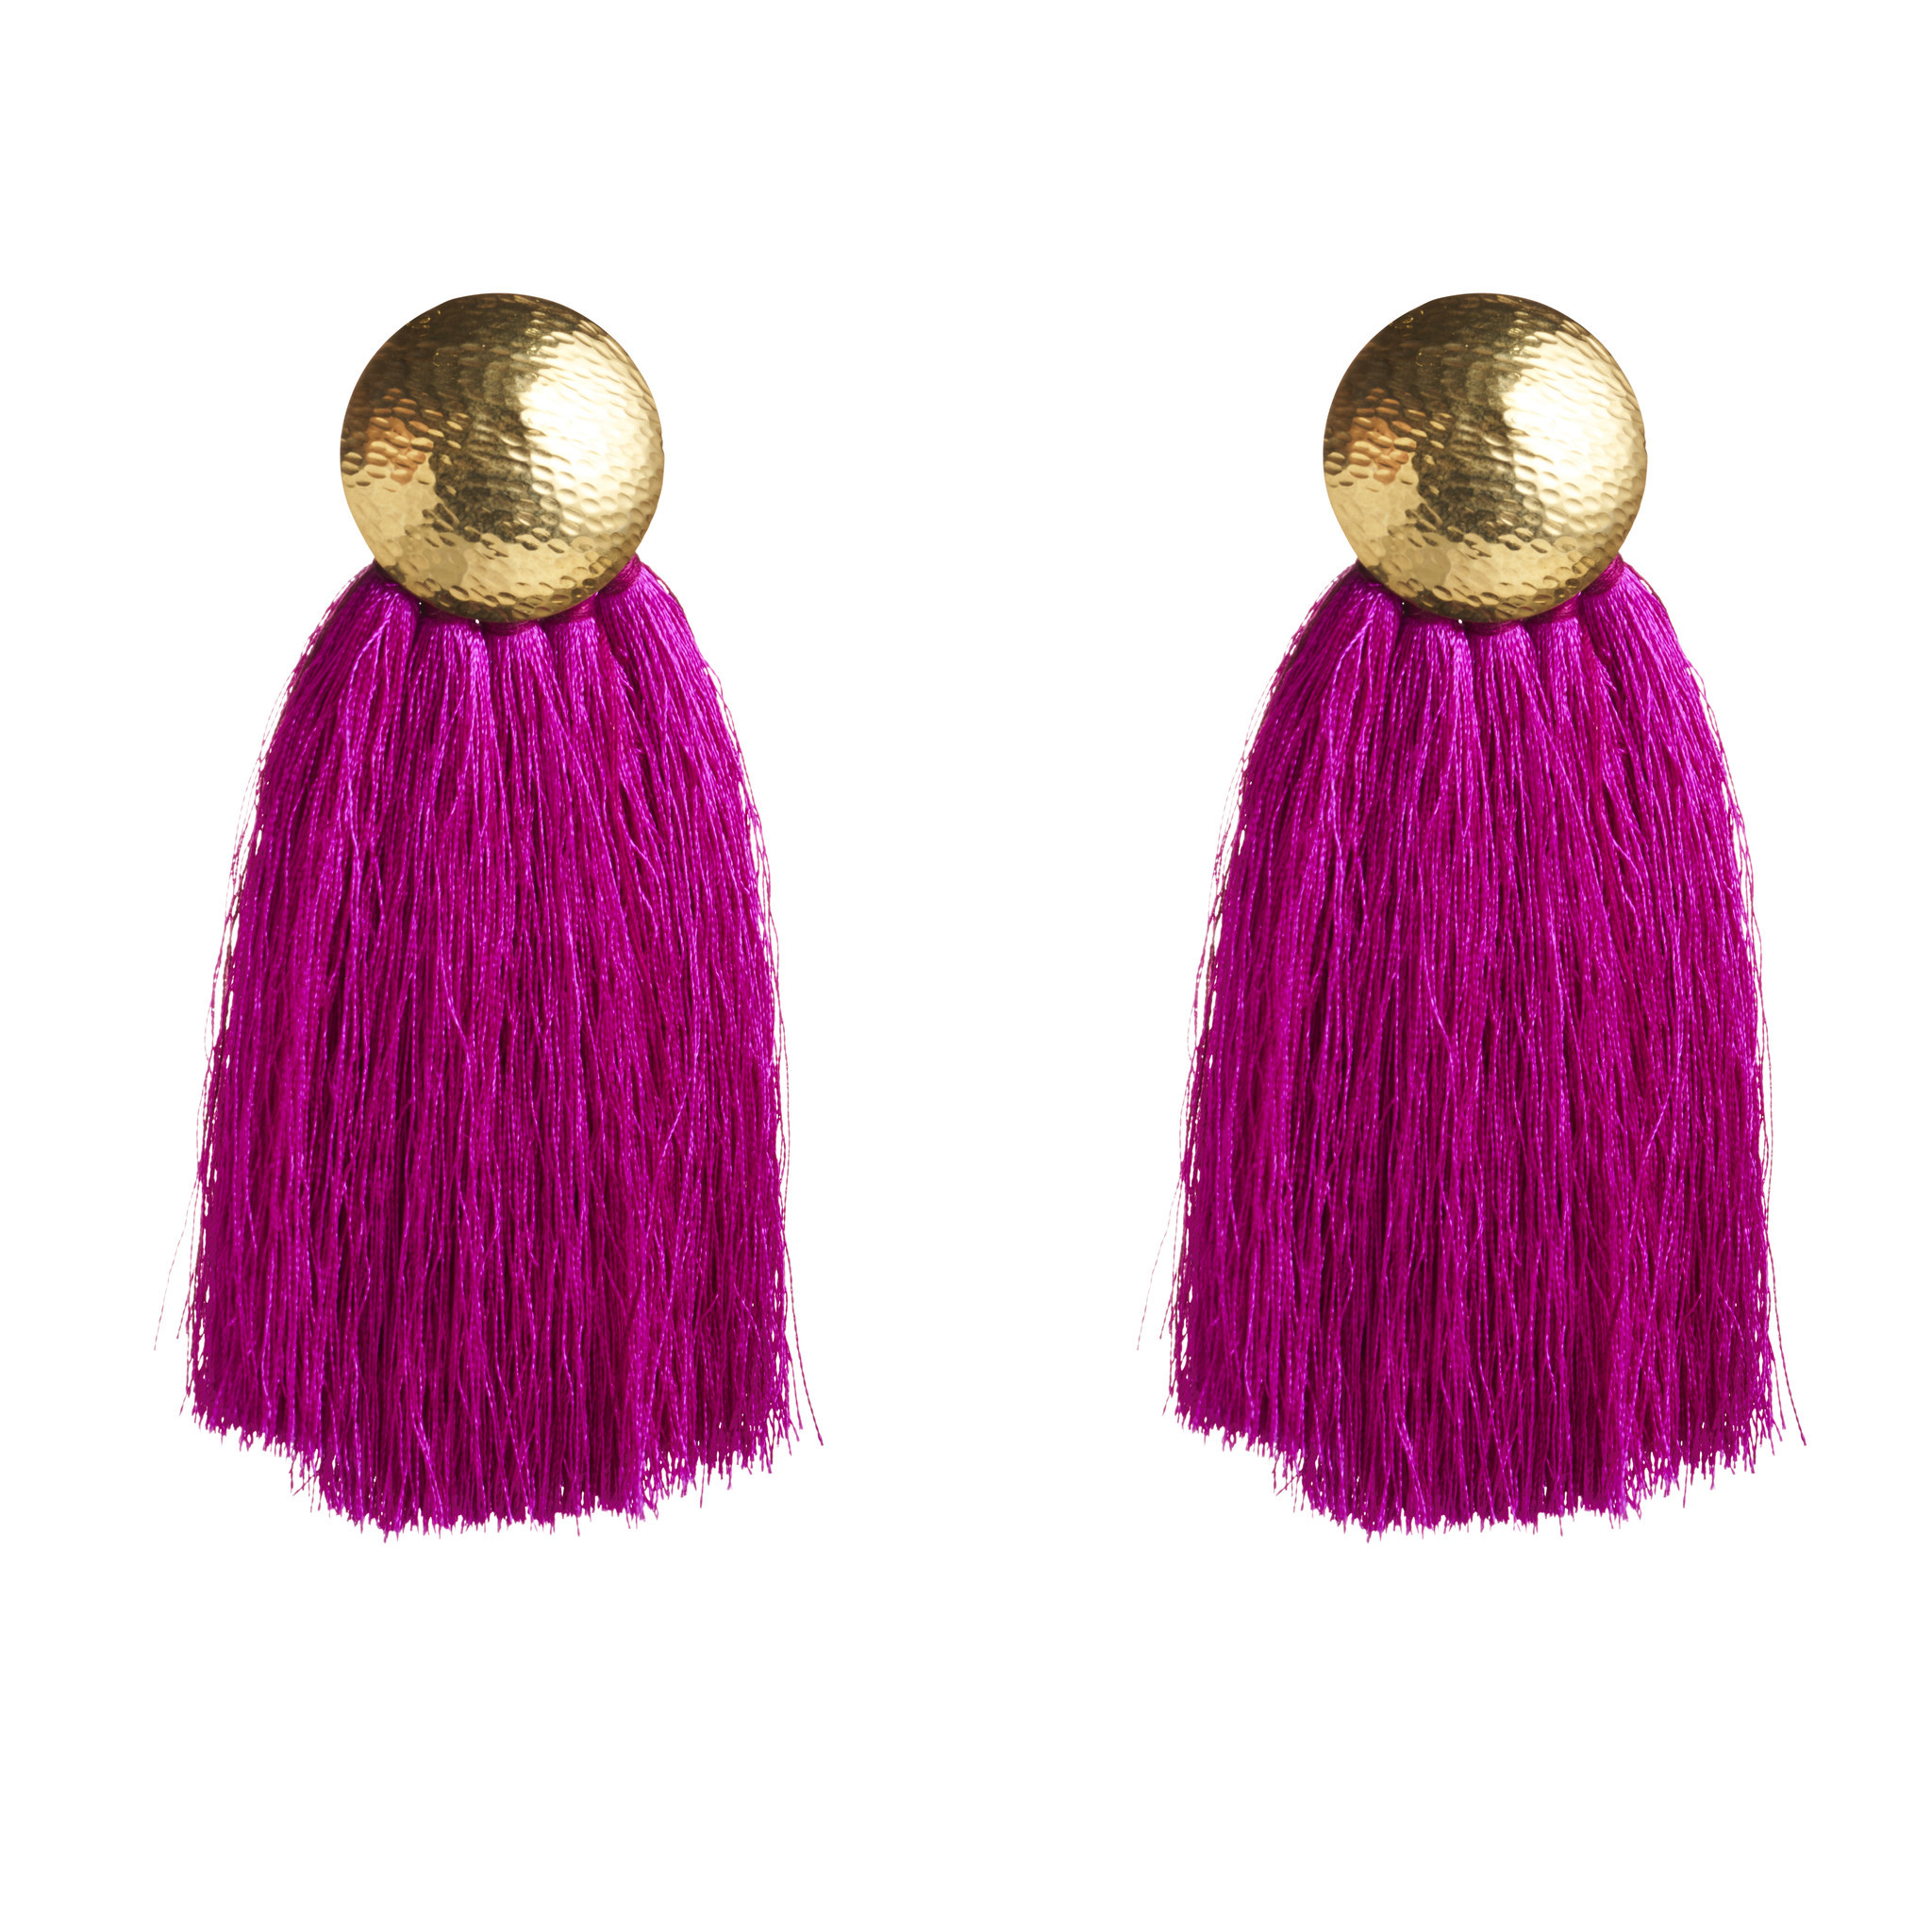 Flaca's tasseled earrings in silk and sterling silver.